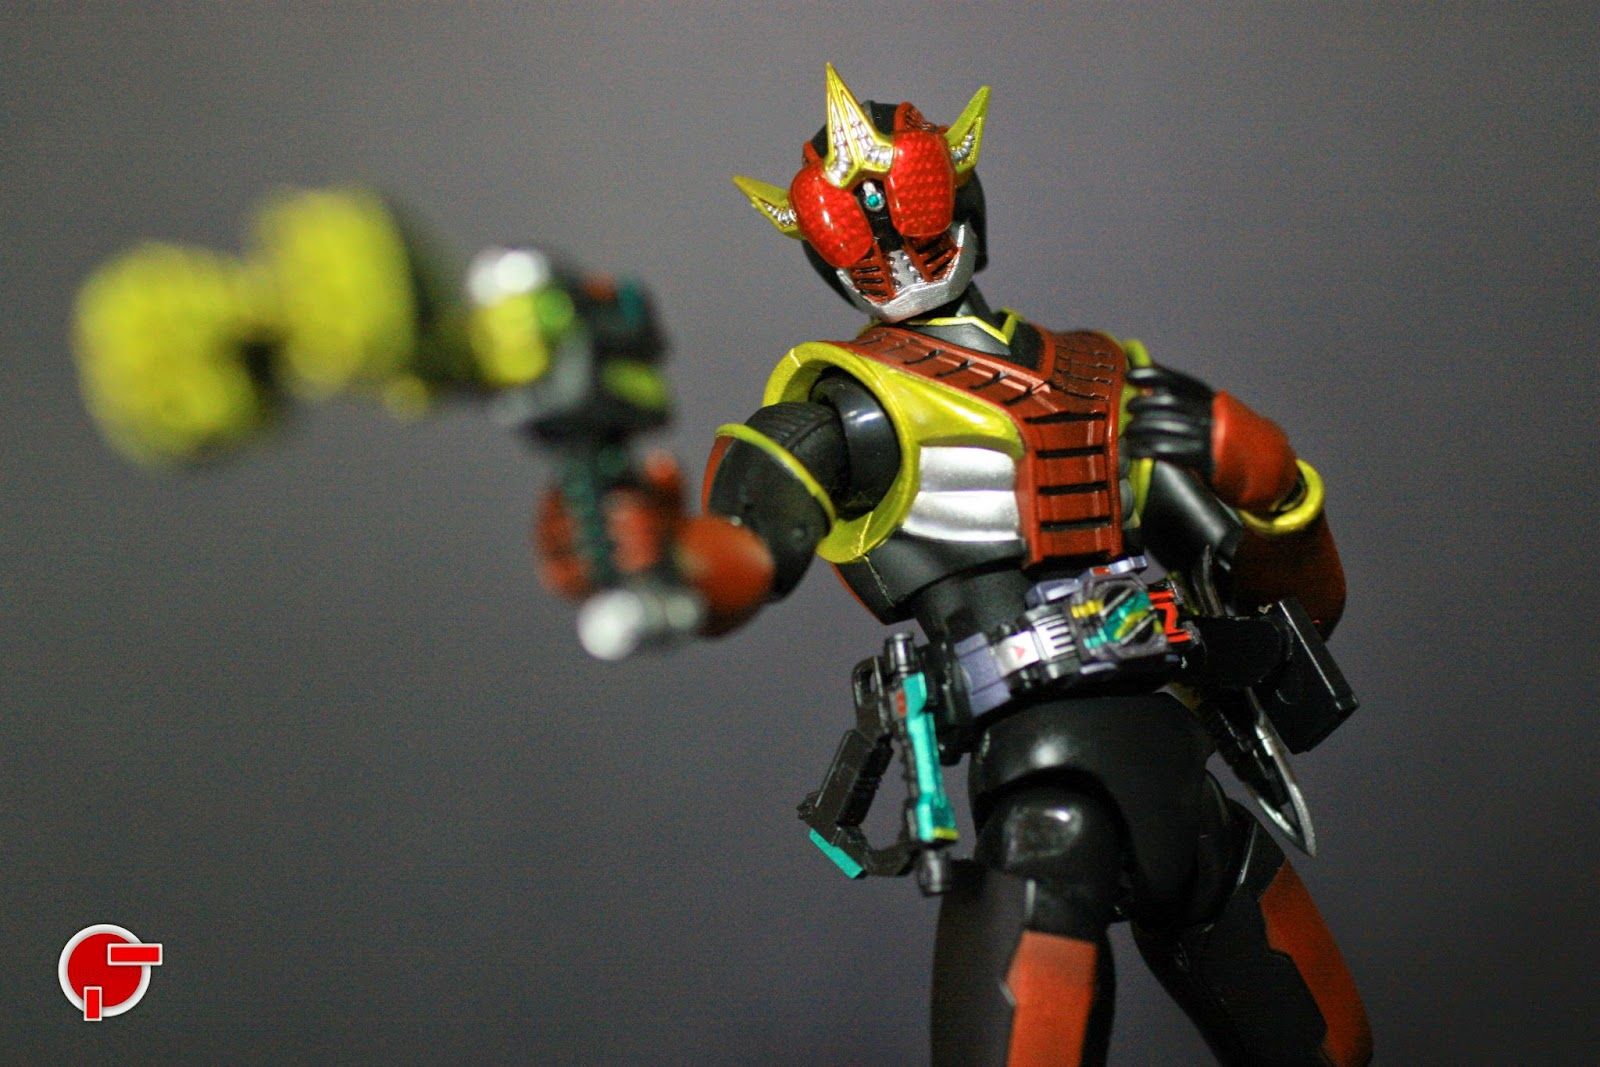 Firestarter's Blog: Toy Review: S.H. Figuarts Kamen Rider Zeronos ...